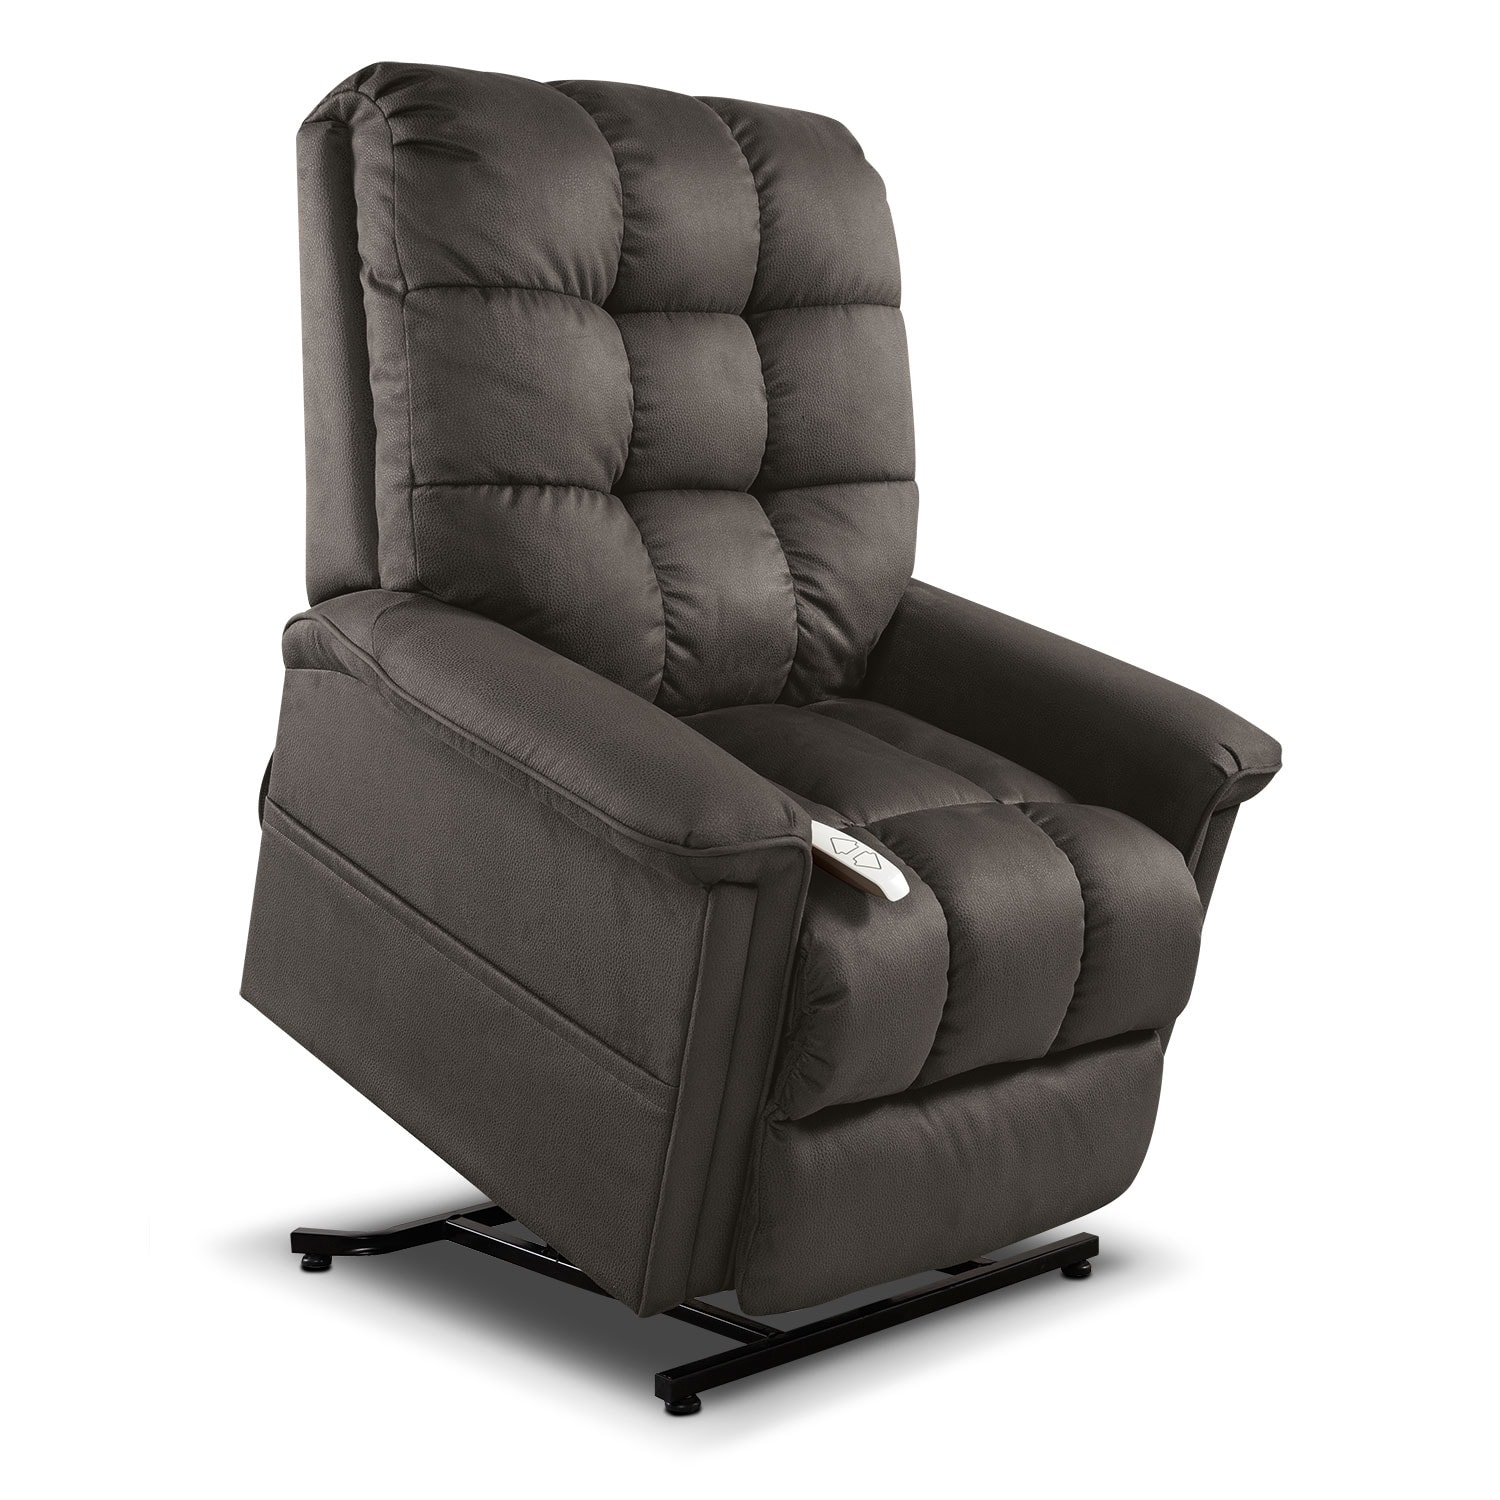 Living Room Furniture - Bea Lift Chair